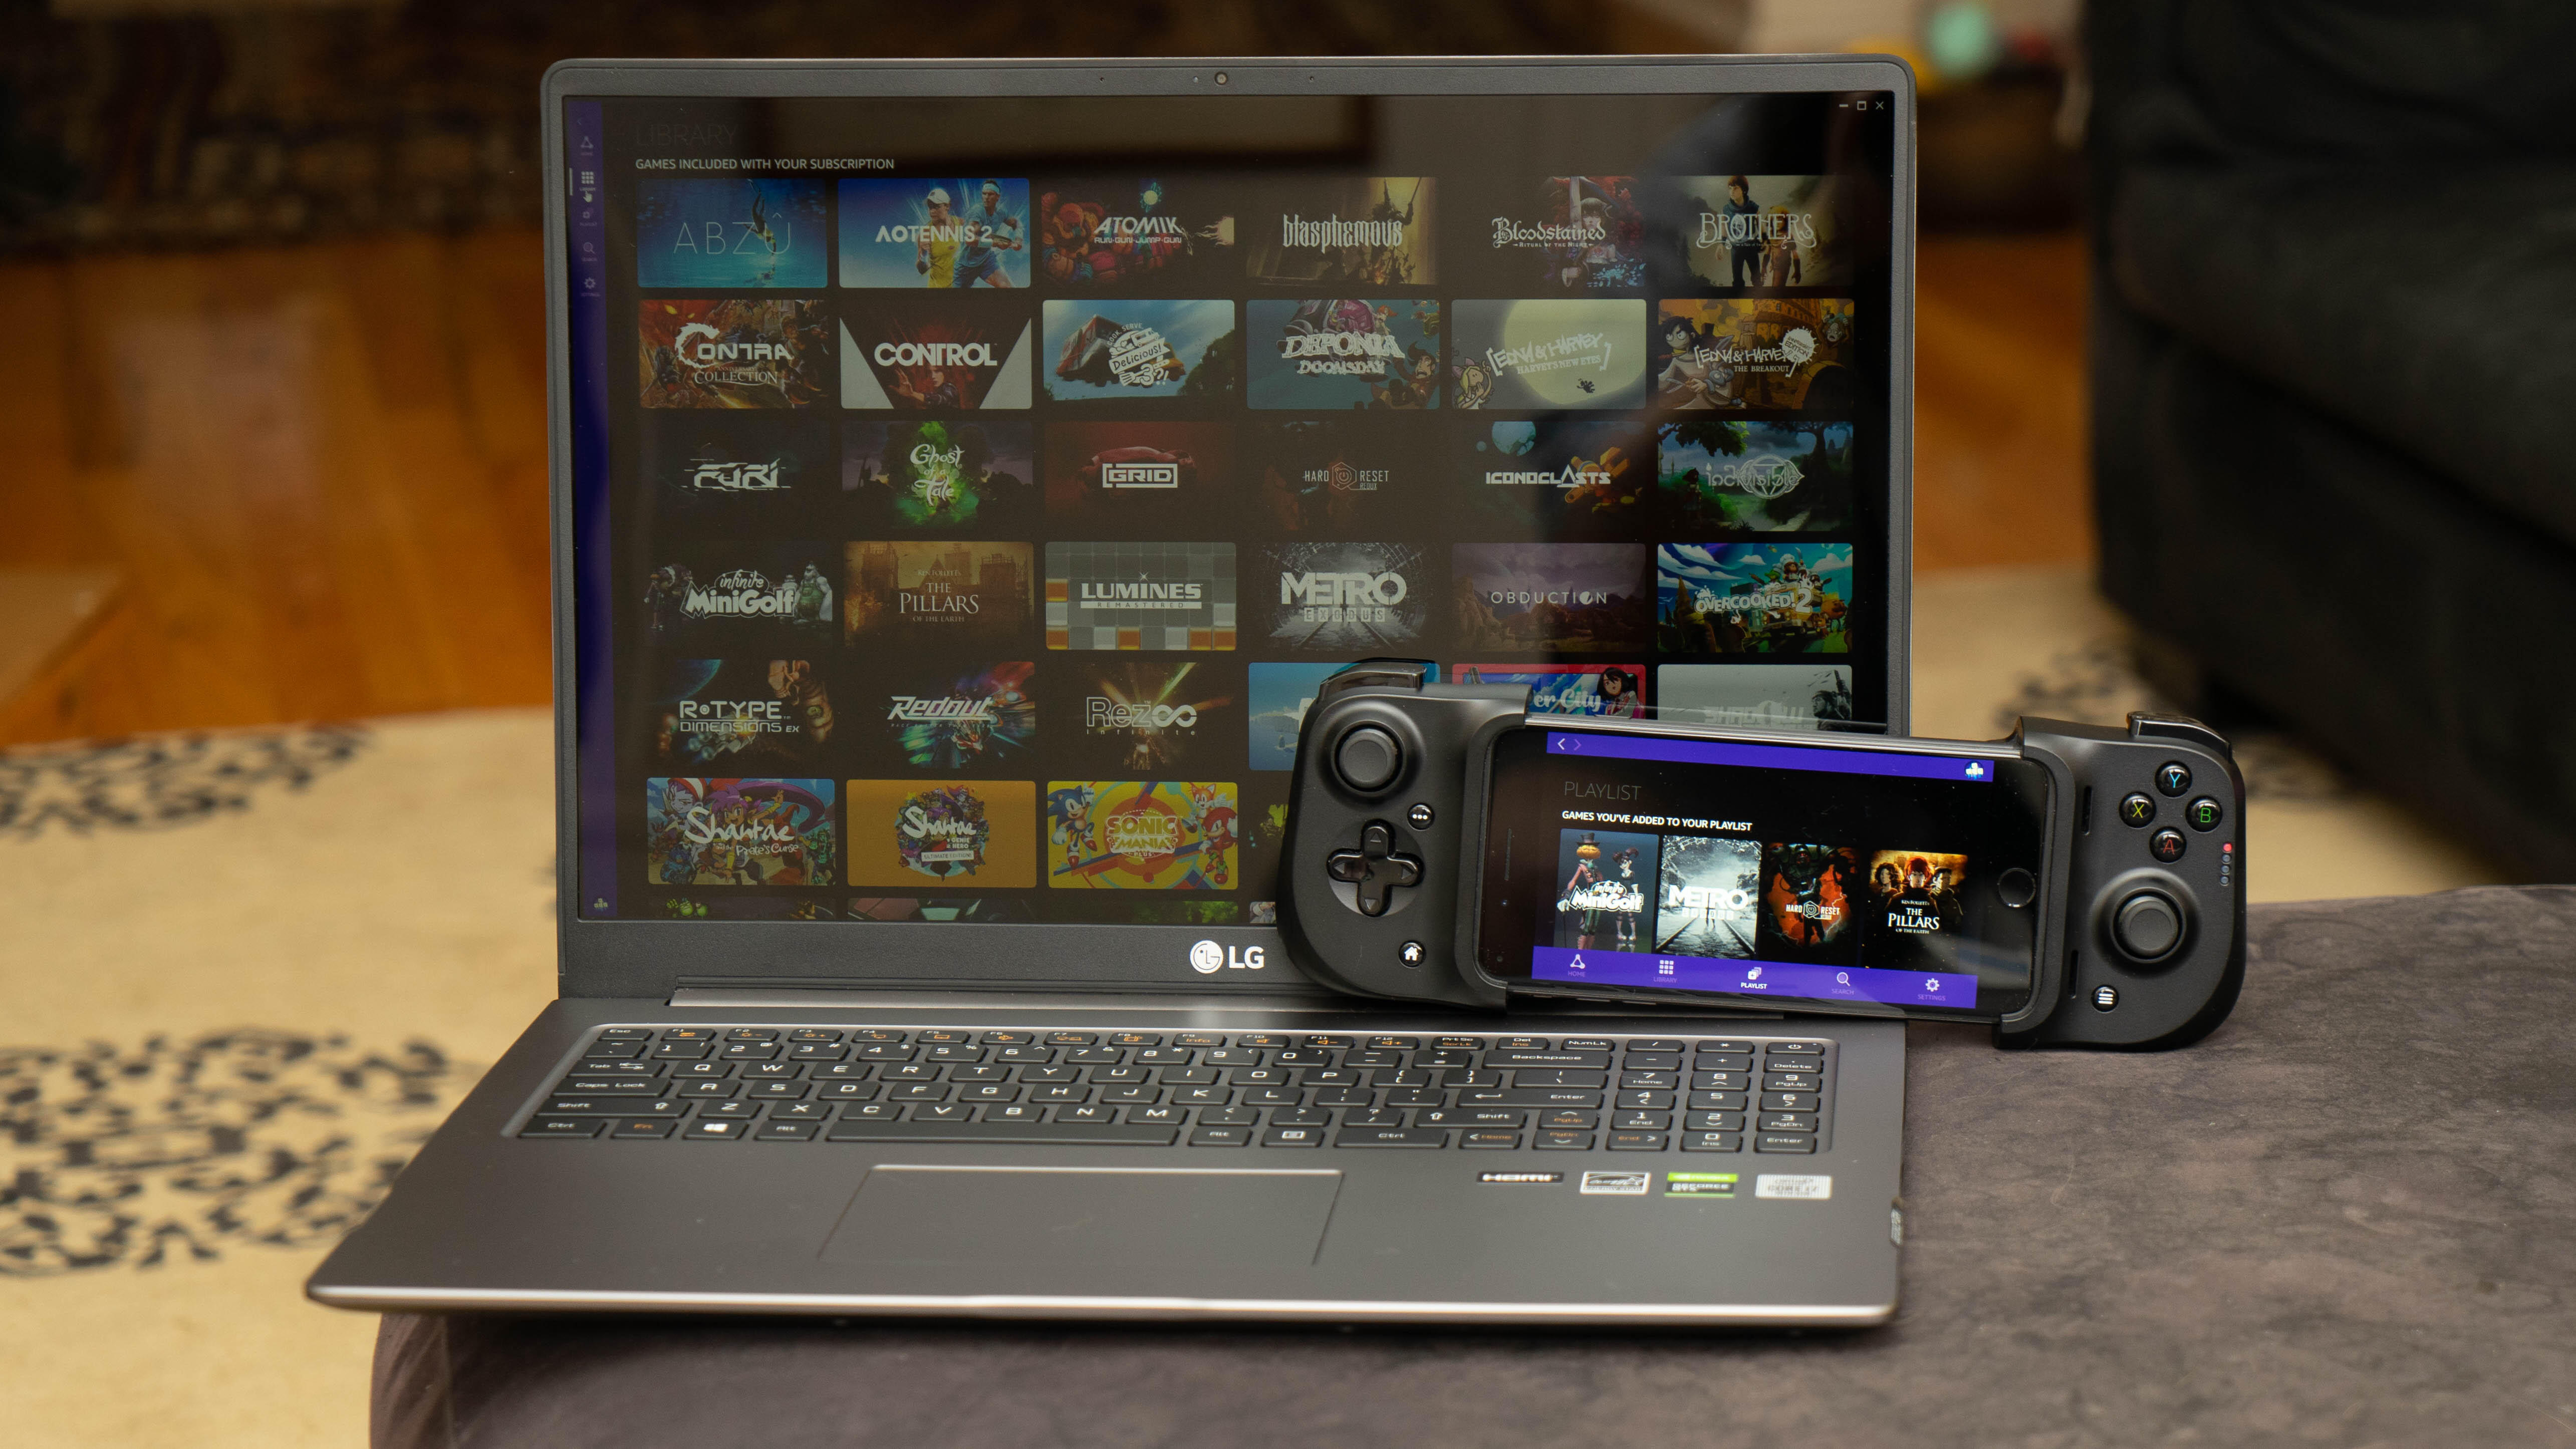 Video: Amazon Luna: Hands-on with the new cloud gaming service